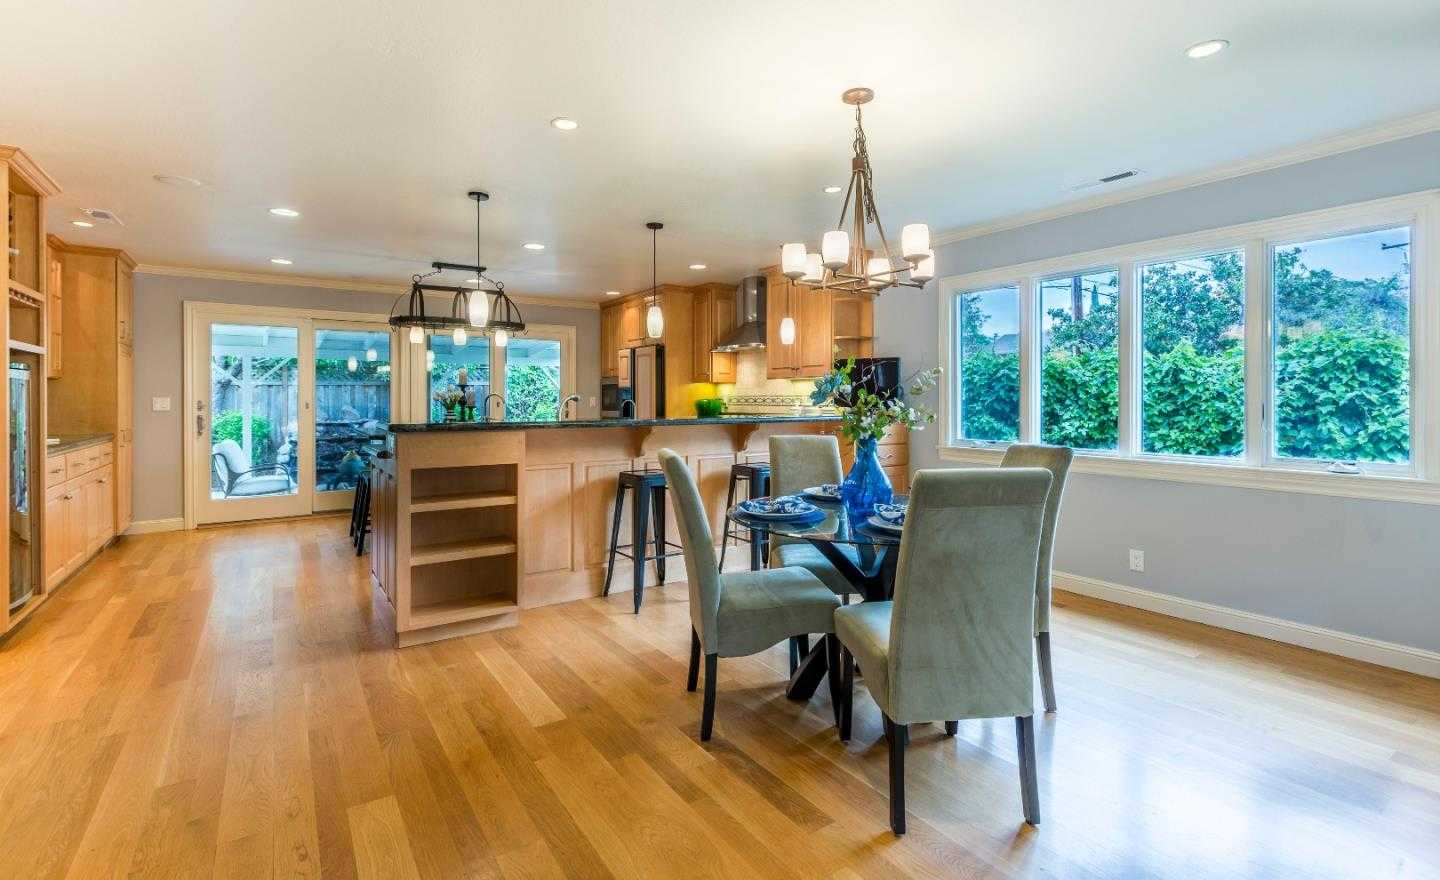 $2,088,000 - 3Br/2Ba -  for Sale in Sunnyvale